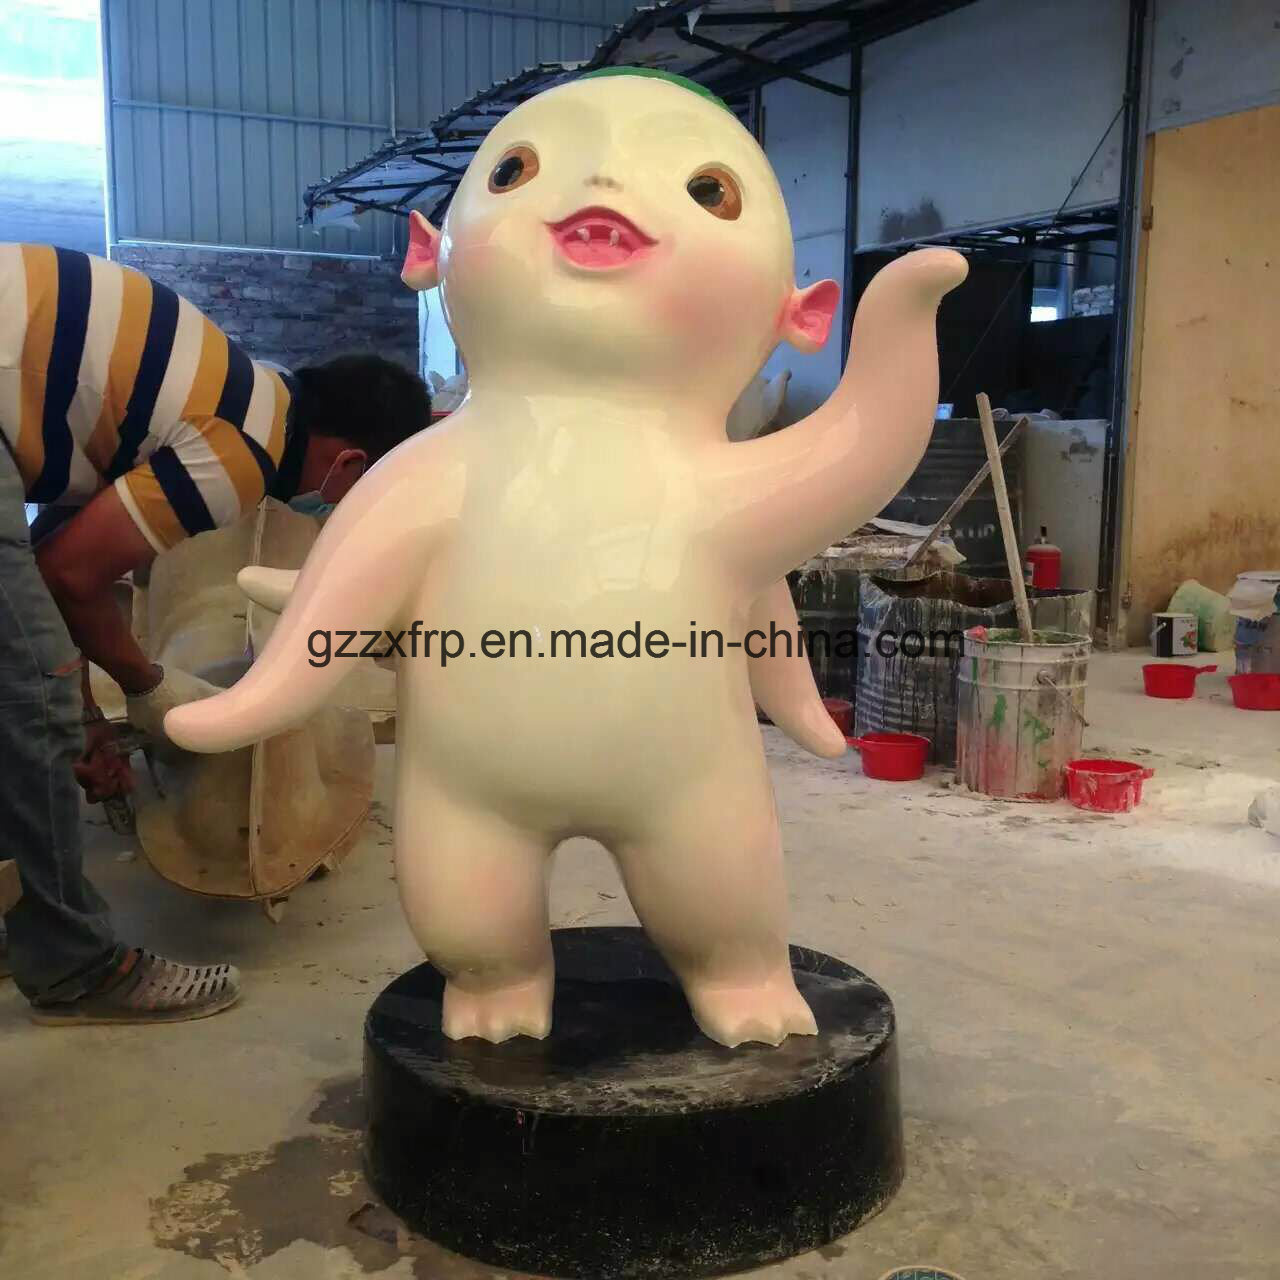 FRP GRP/Fiberglass Hand Lay-up Handicraft/Cartoon Figures